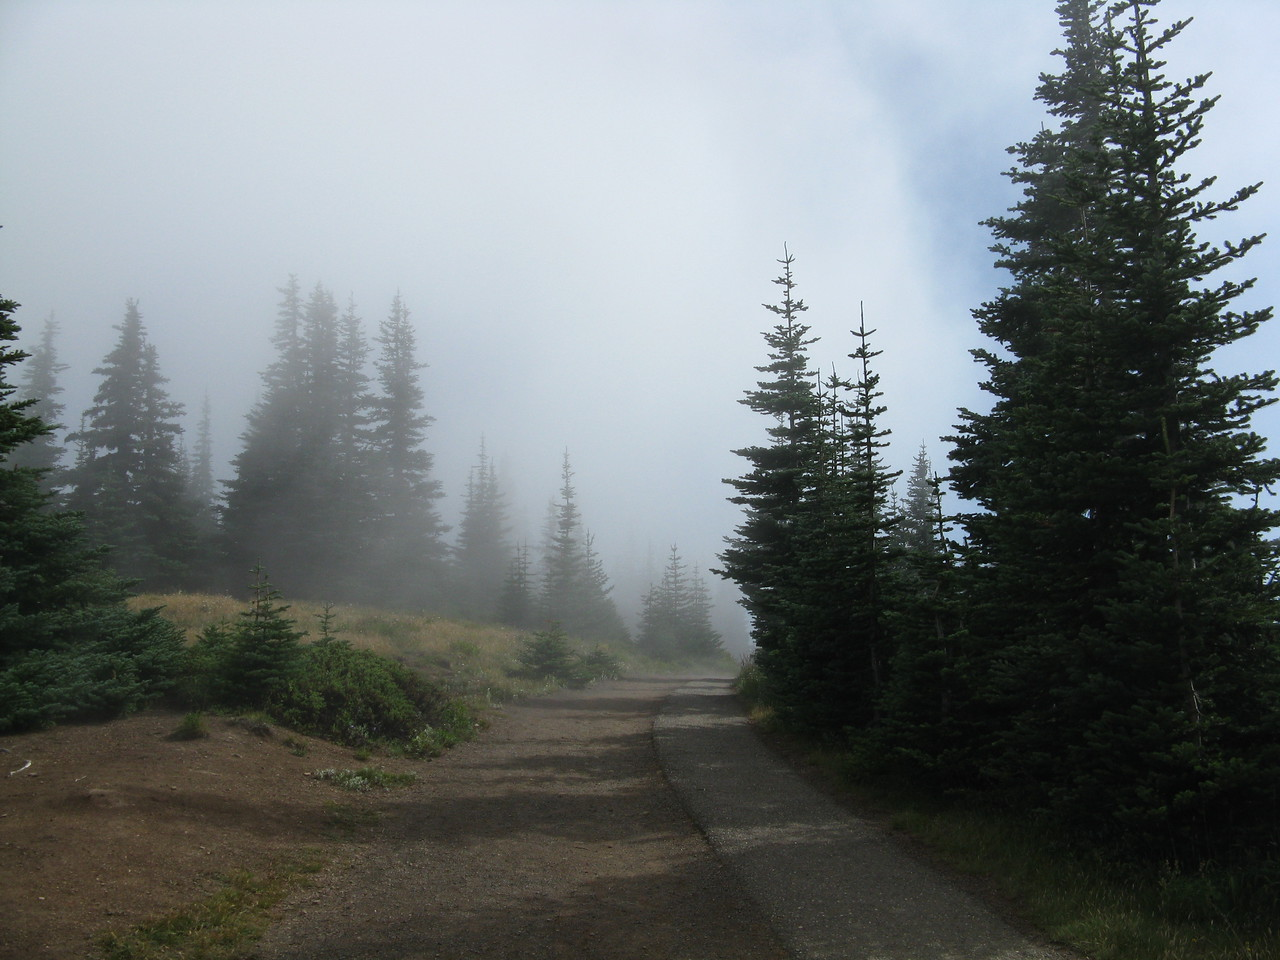 The clouds were moving in from the north, and the trail disappeared into the mist was we neared the trailhead.